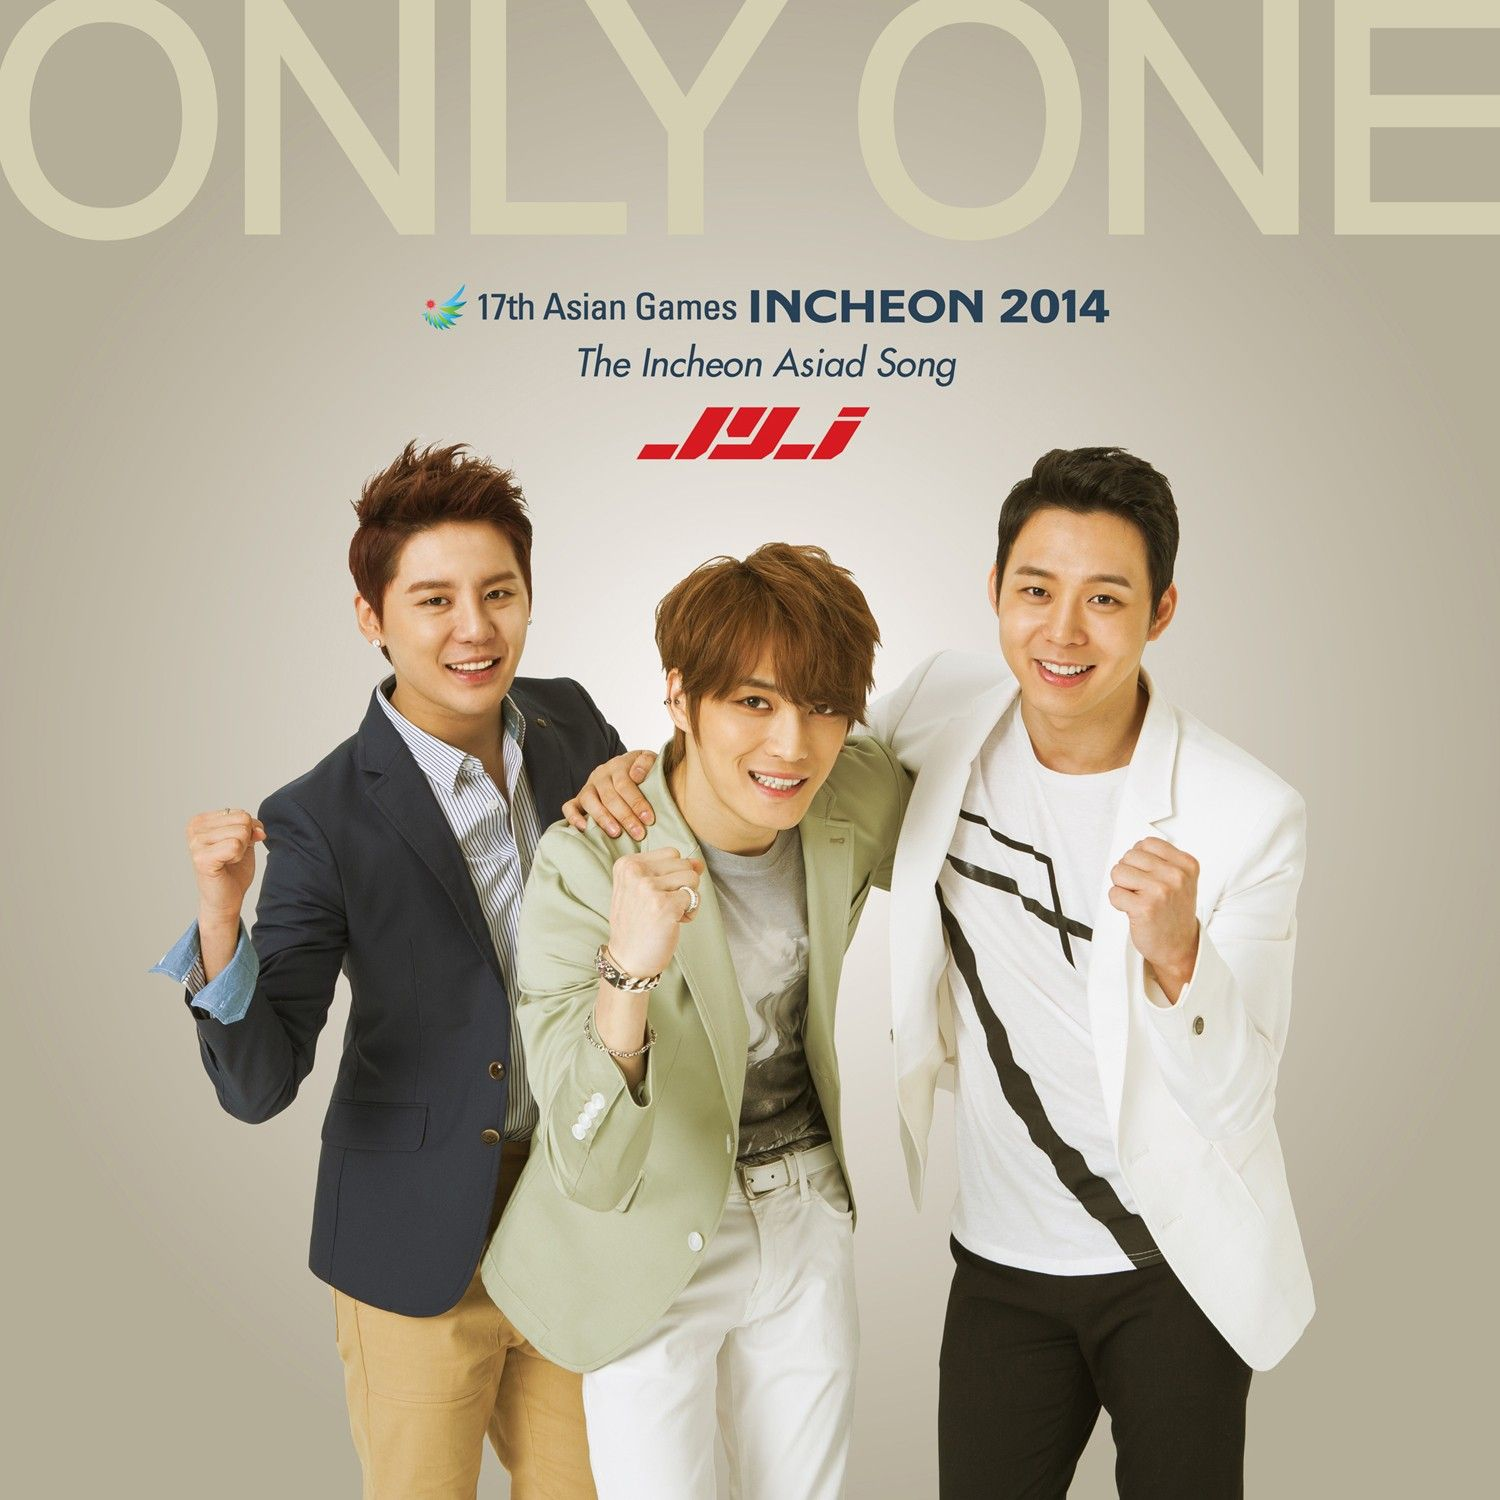 [Single] JYJ - Only One (The Incheon Asiad Song)